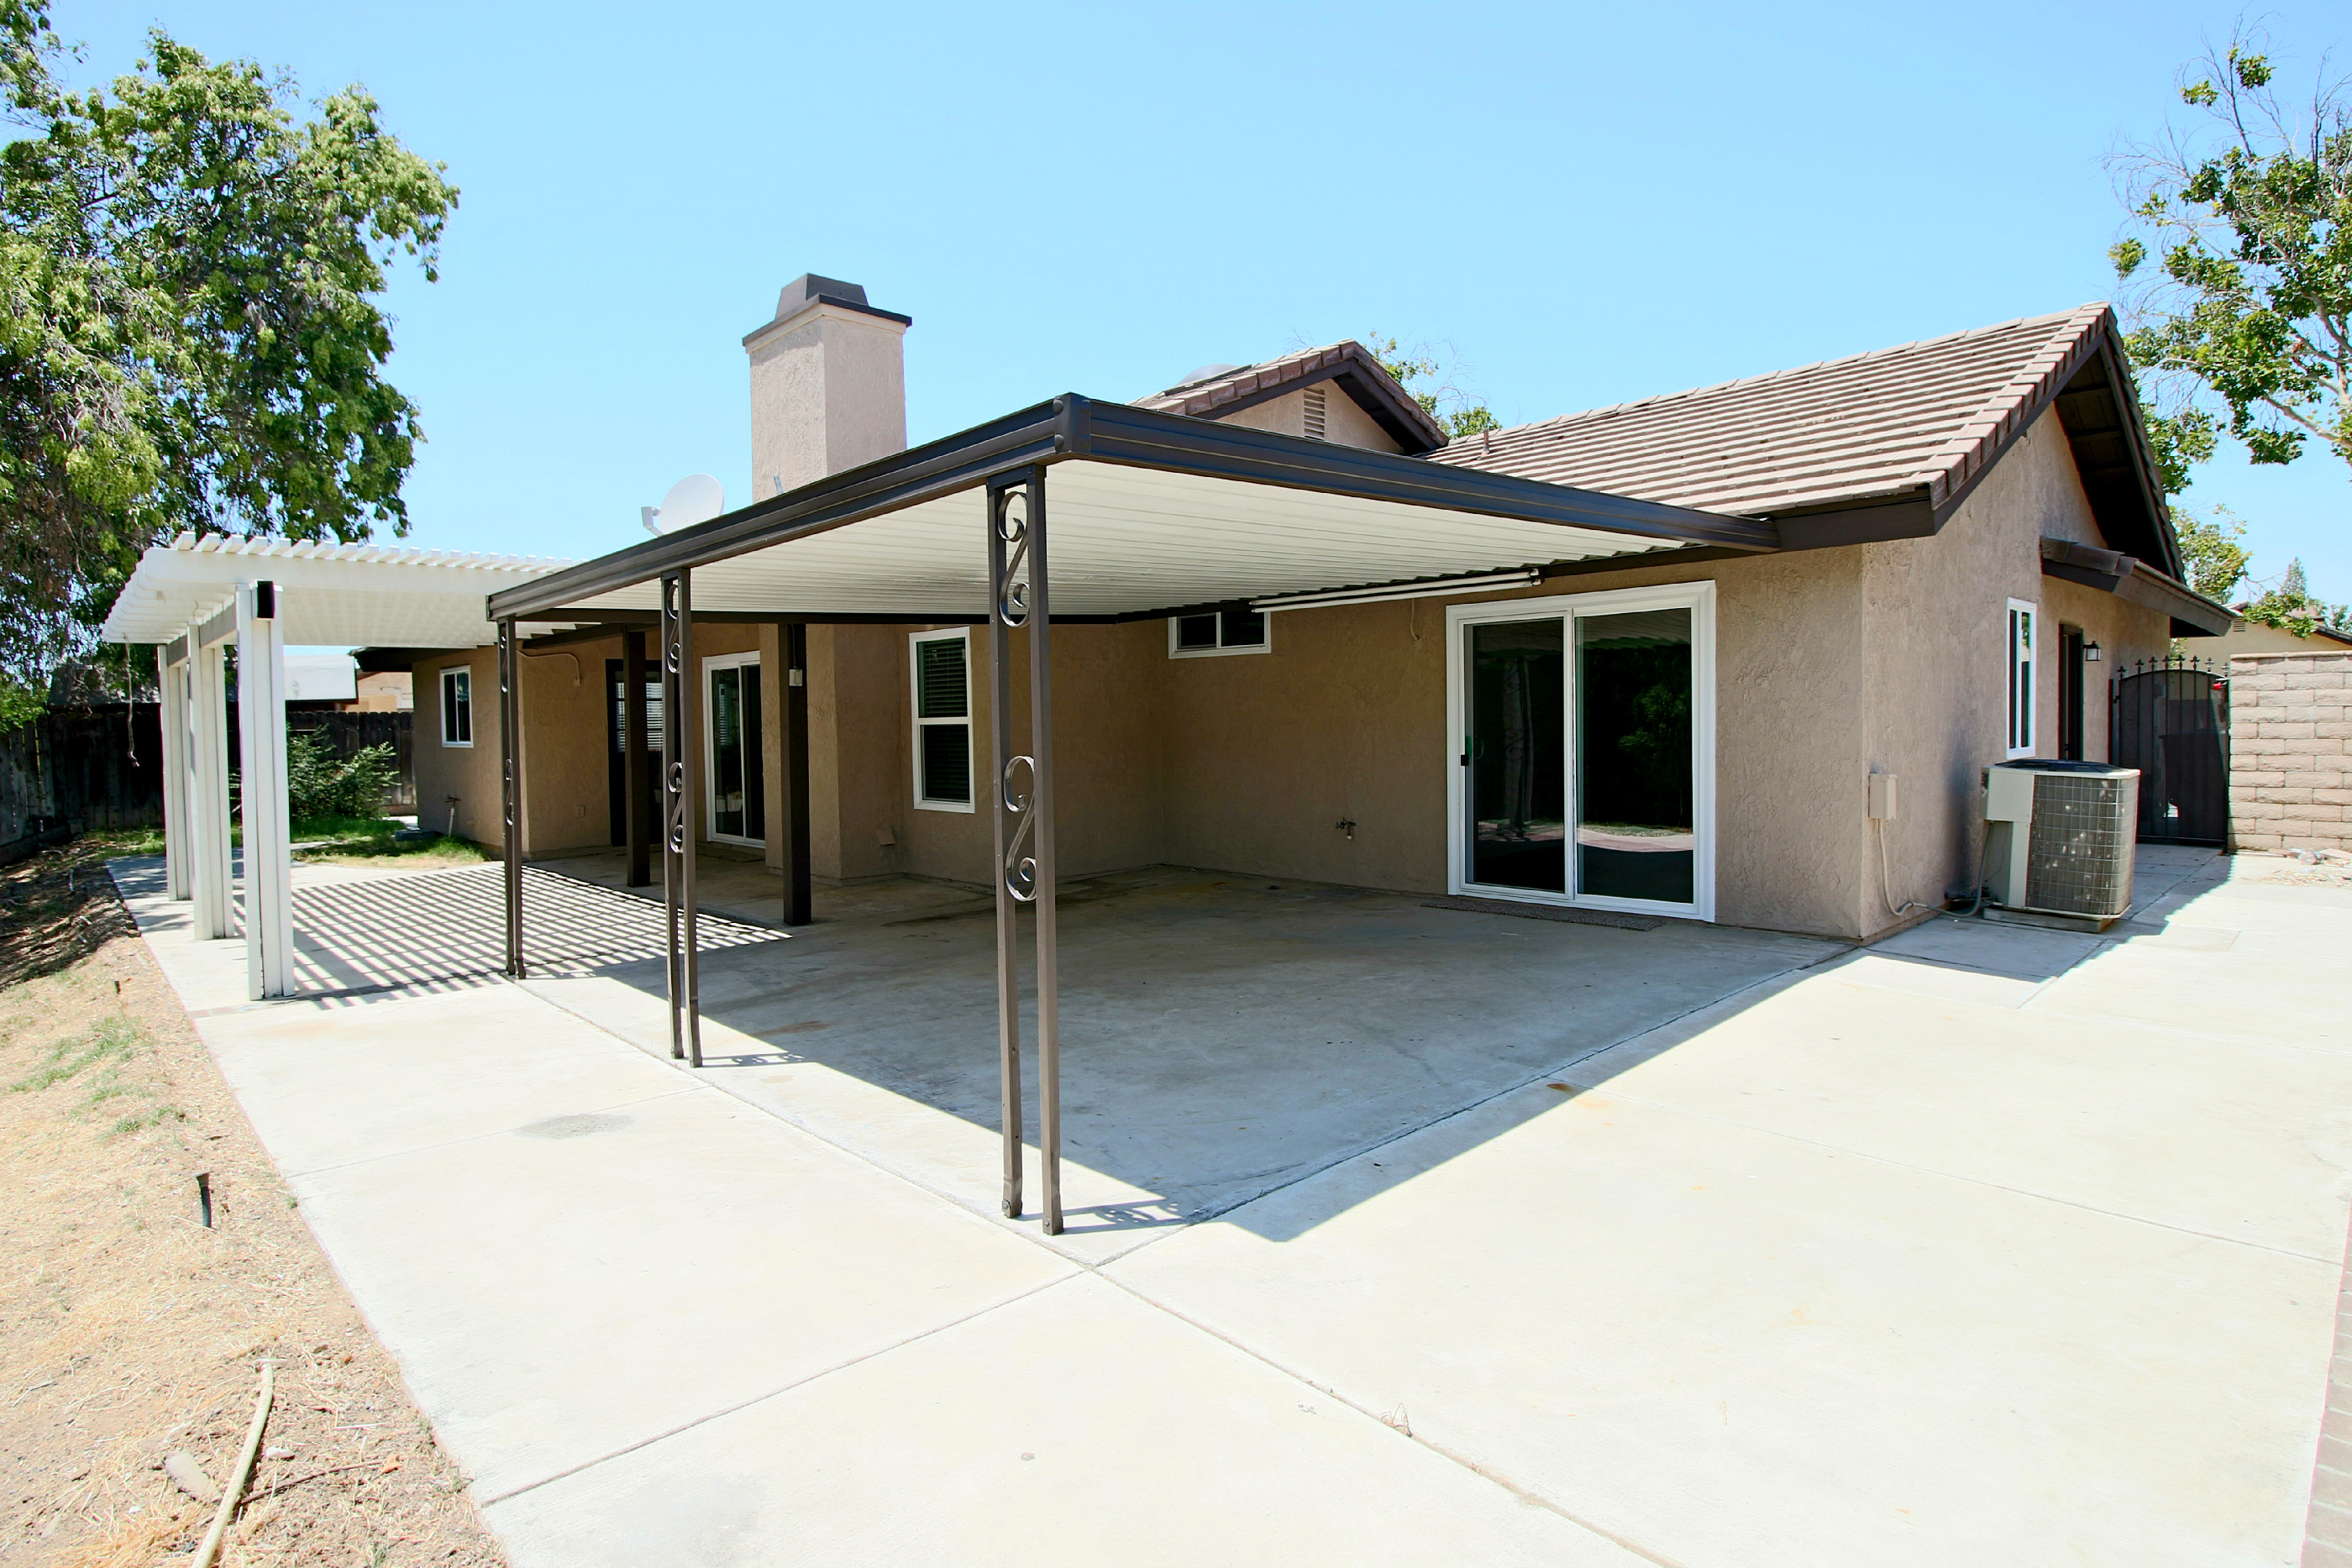 Back Of The House Note Tile Roof Brand New Double Pane Windows And Sliders A Great Covered Patio With Extensive Concrete For Large Family